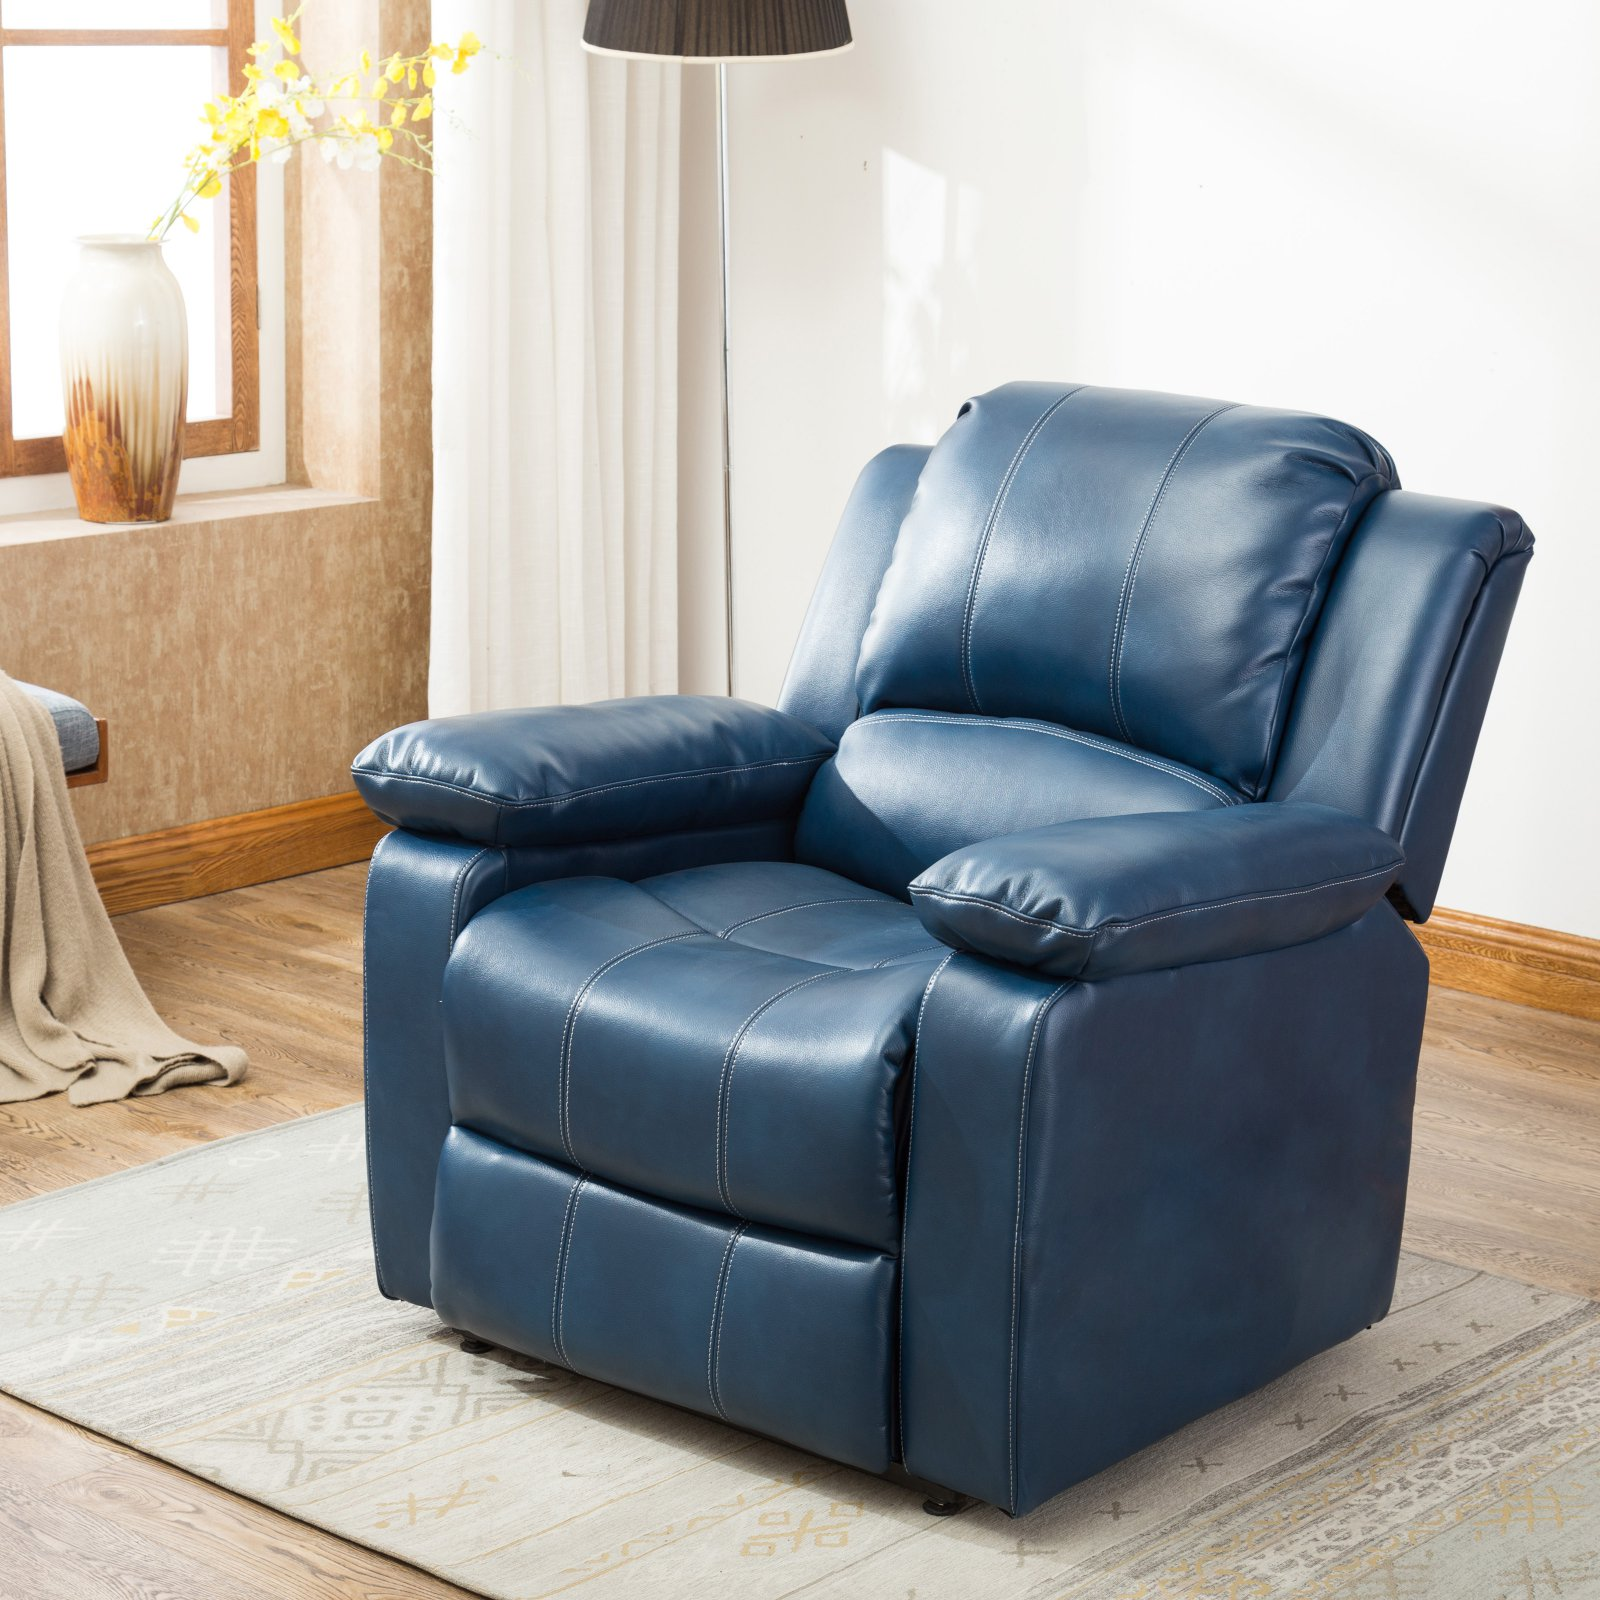 Comfort Pointe Spence Leather Gel Lift Chair